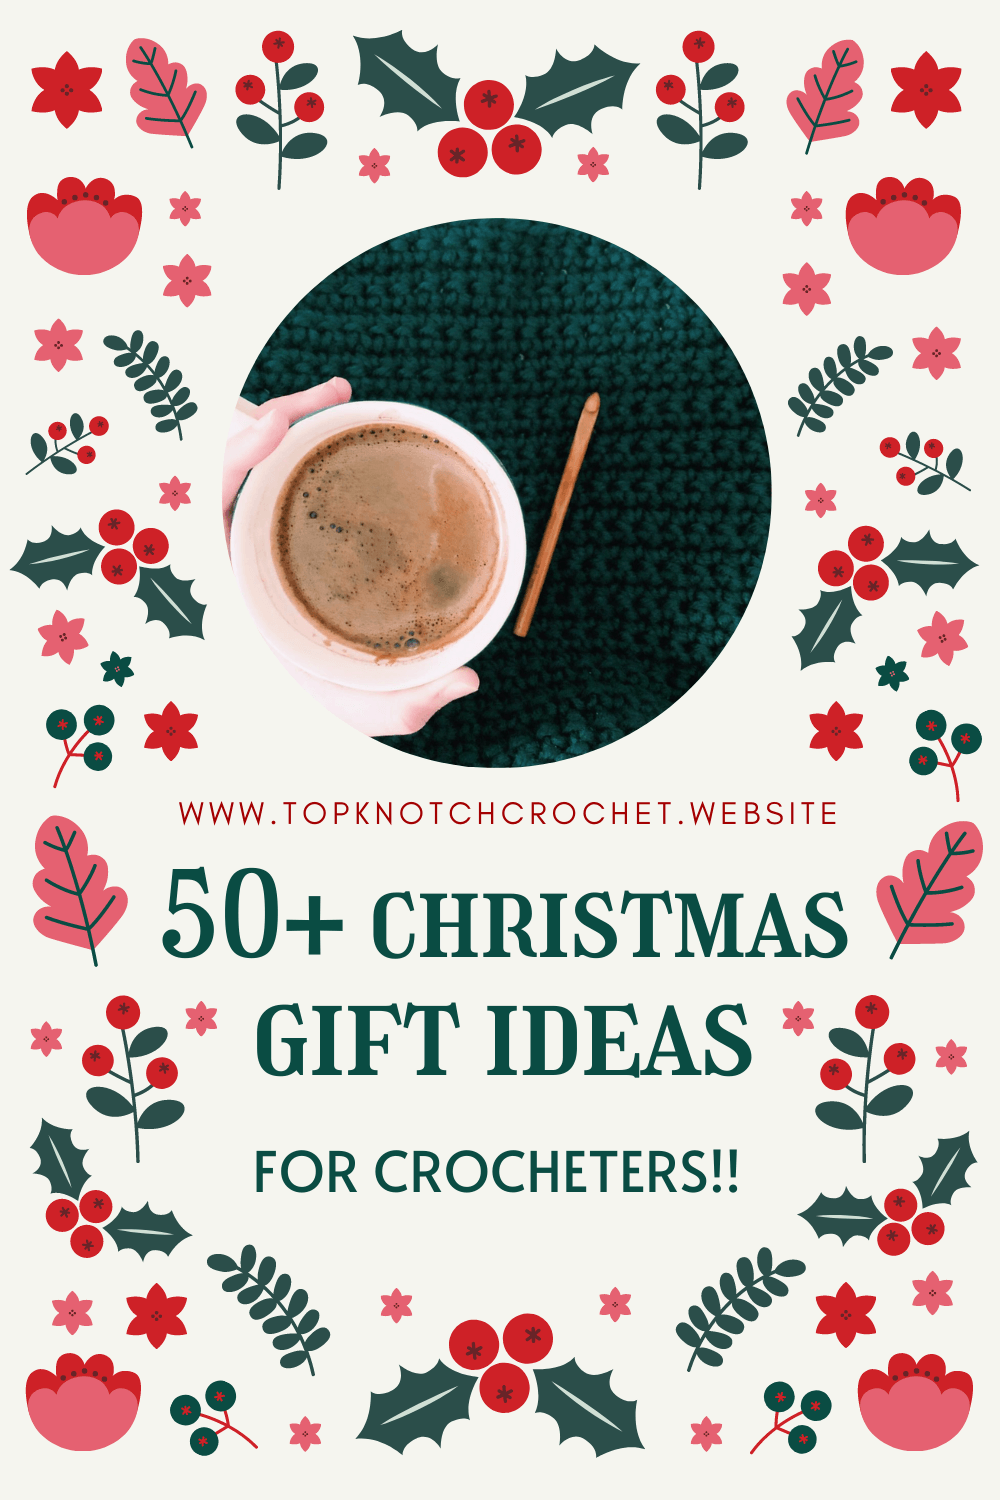 The Ultimate Christmas Gift Guide for Crocheters